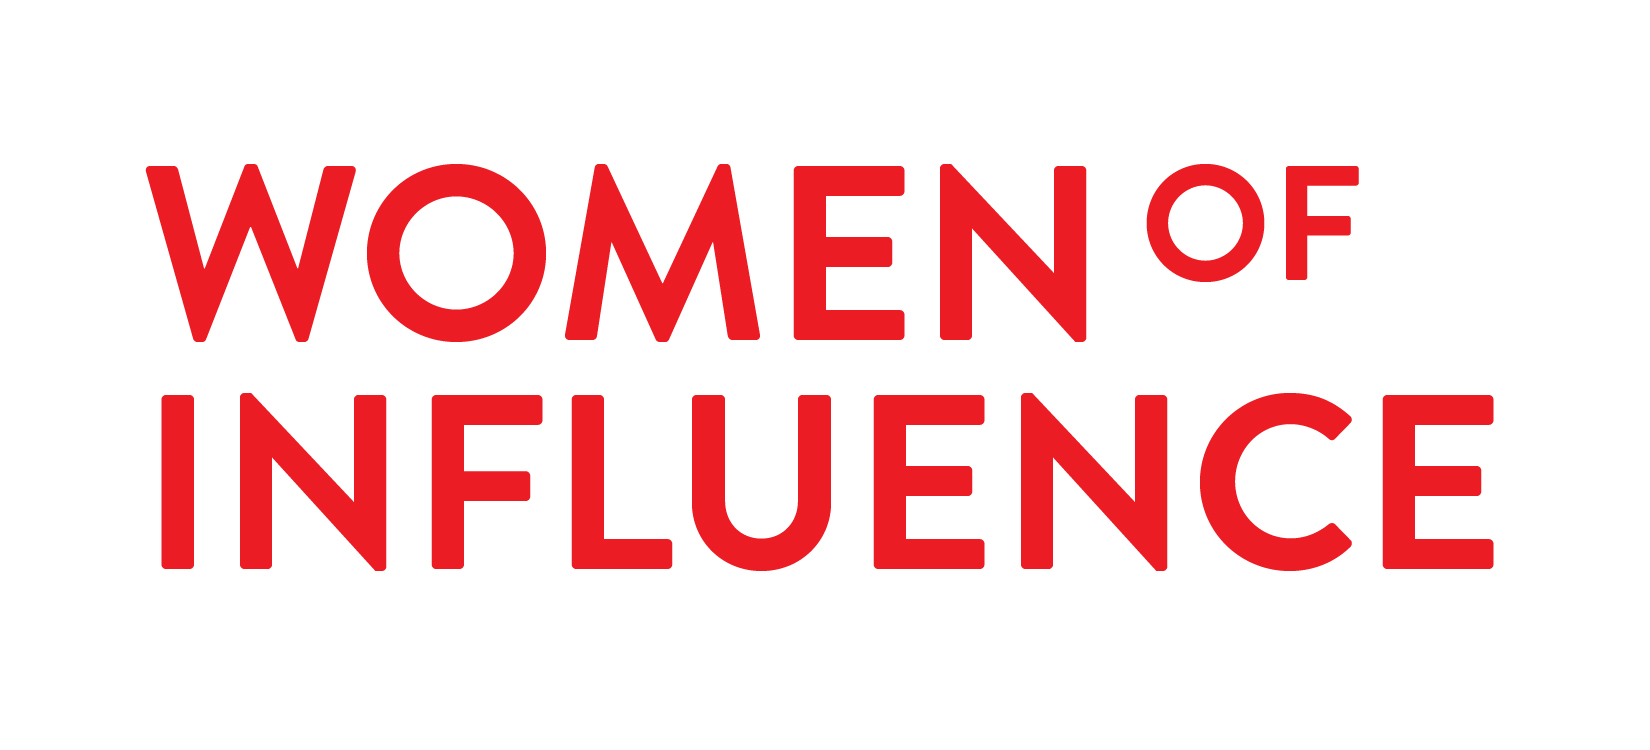 Women of Influence Highlights CEO Keren Moynihan's Achievements